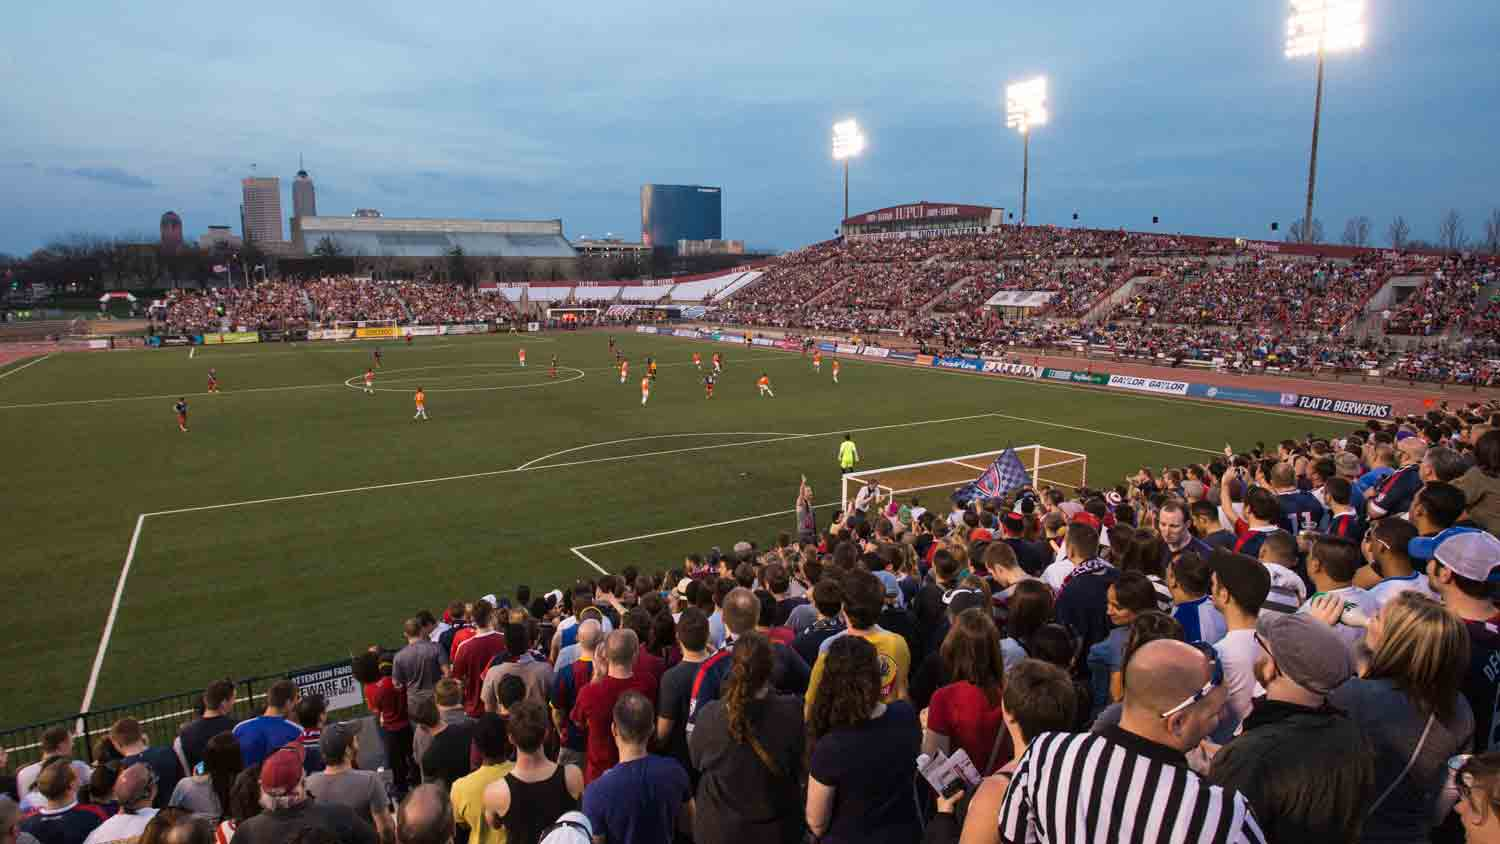 Indy Eleven 1